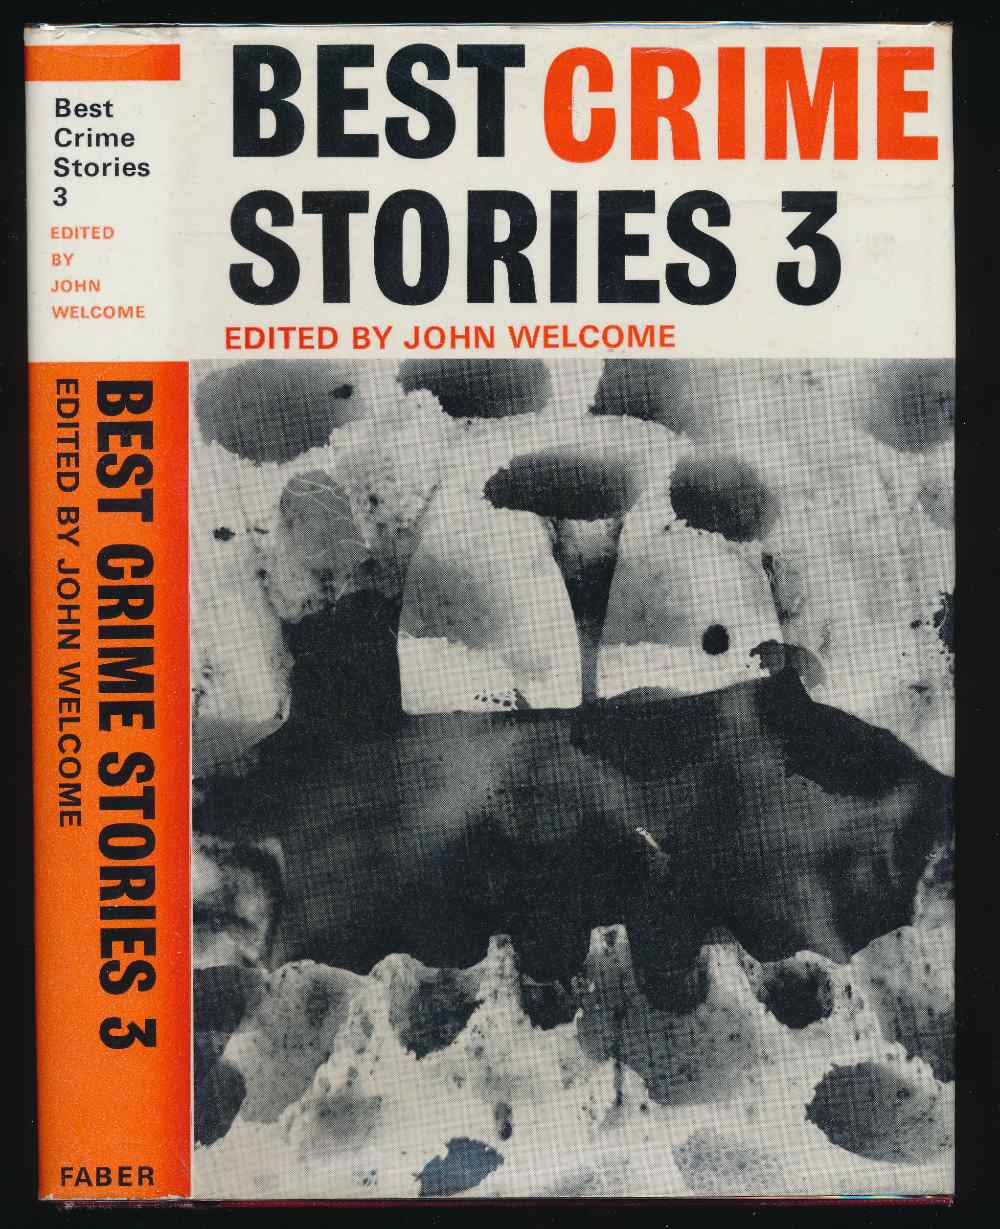 Best crime stories 3